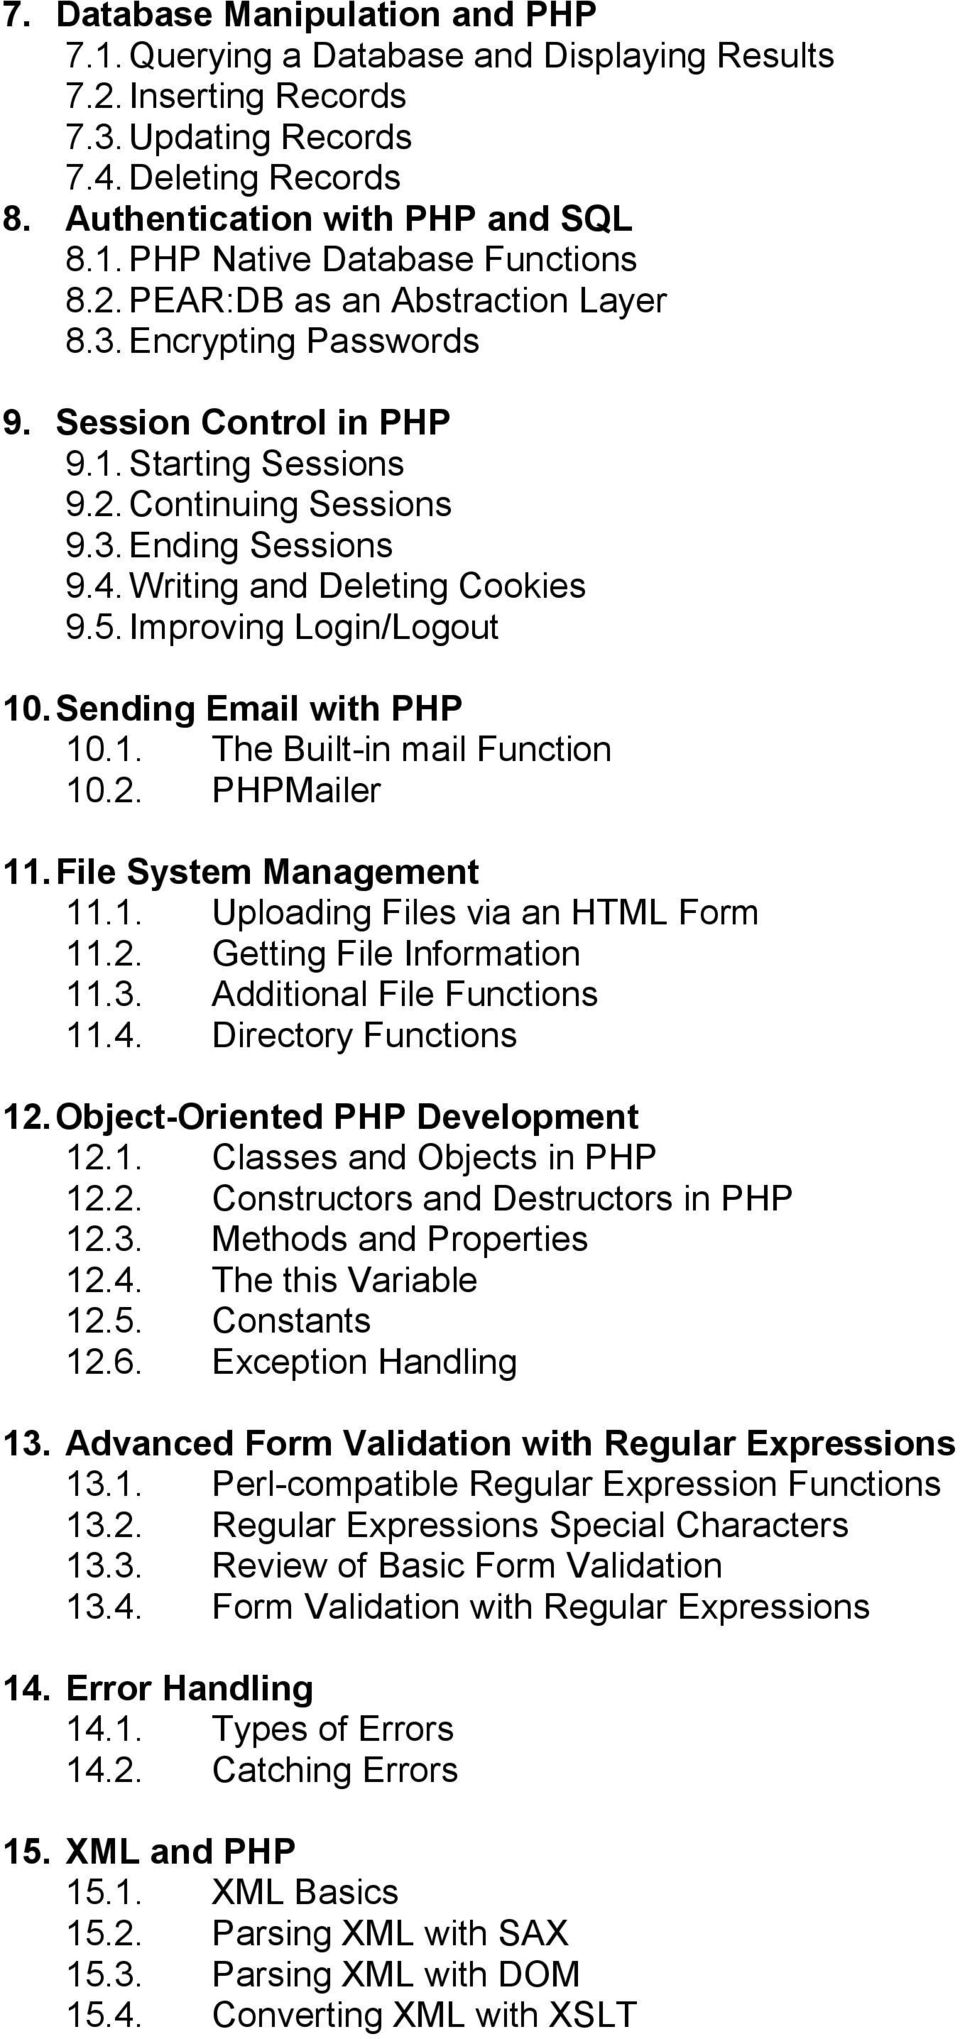 Improving Login/Logout 10. Sending Email with PHP 10.1. The Built-in mail Function 10.2. PHPMailer 11. File System Management 11.1. Uploading Files via an HTML Form 11.2. Getting File Information 11.